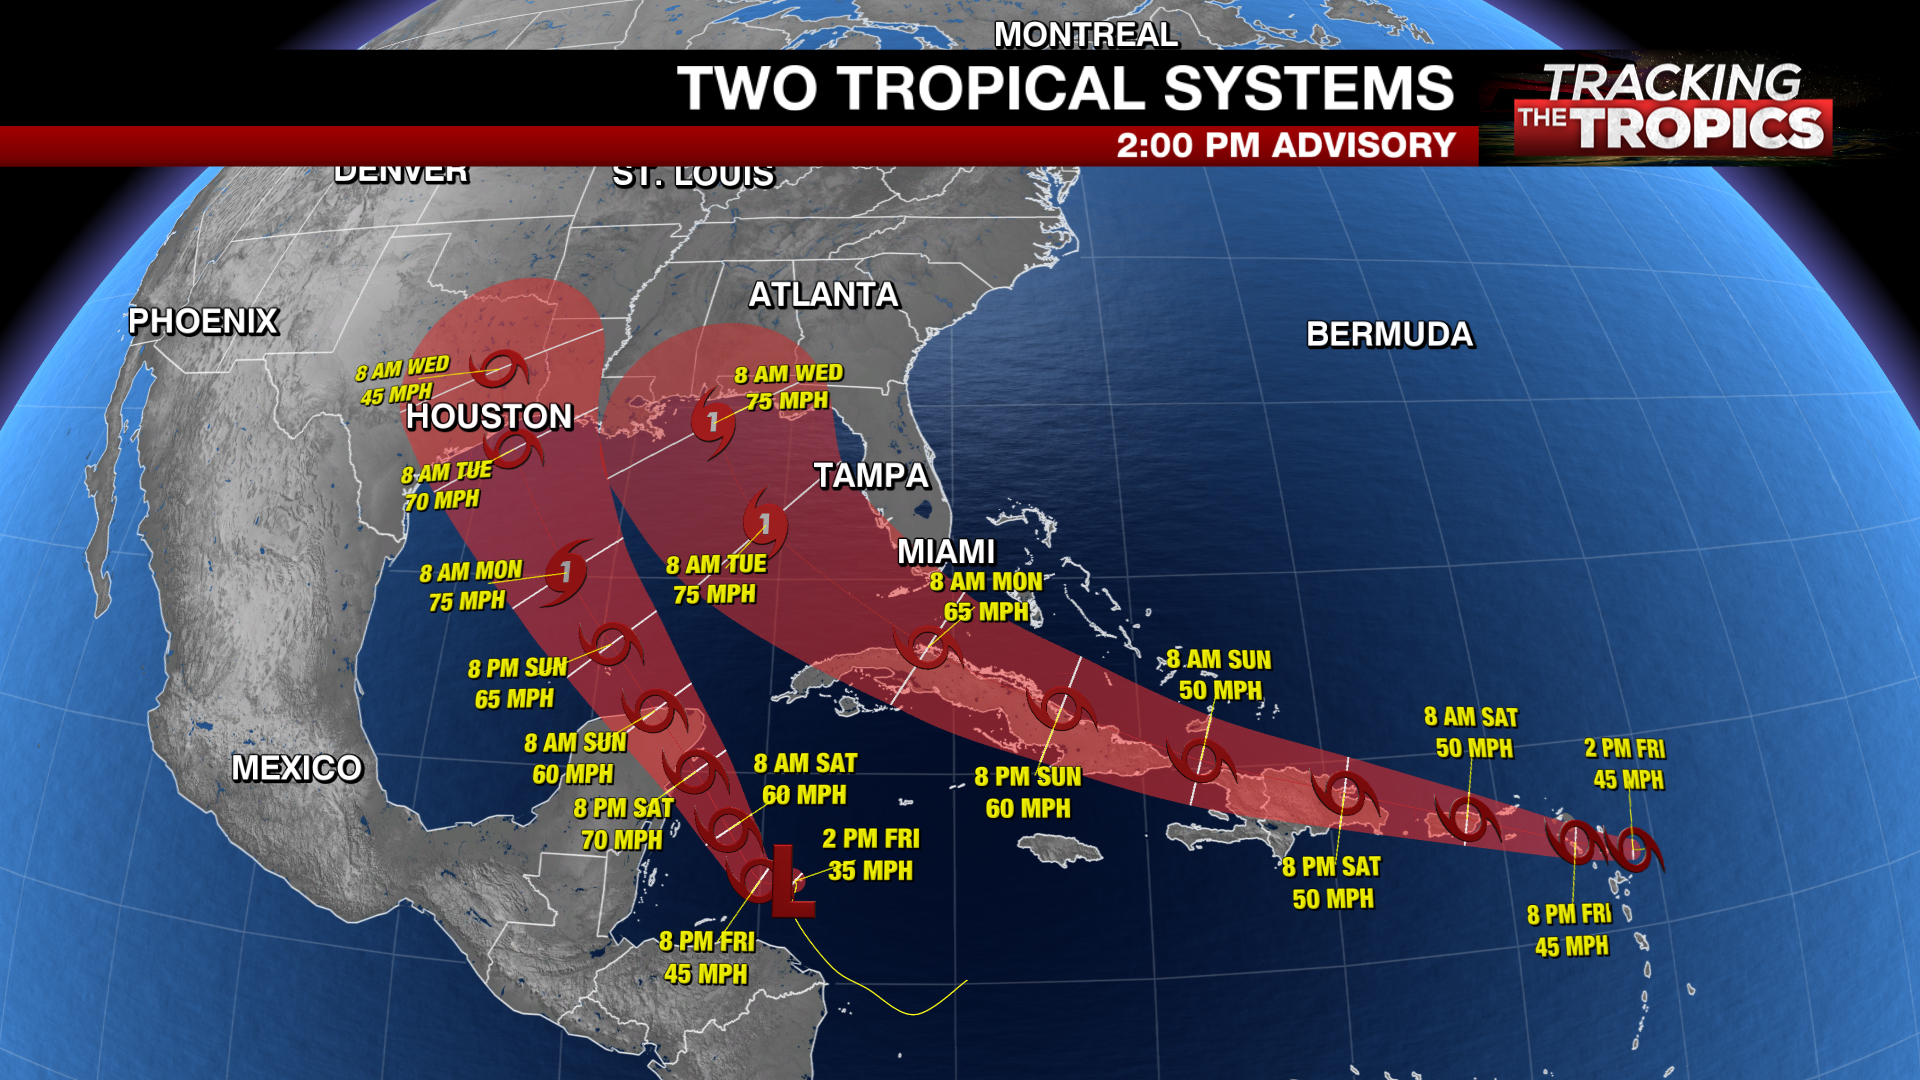 Tracking The Tropics Tropical Storm Laura S Track Shifts West Marco Expected To Form Soon Kxan Austin